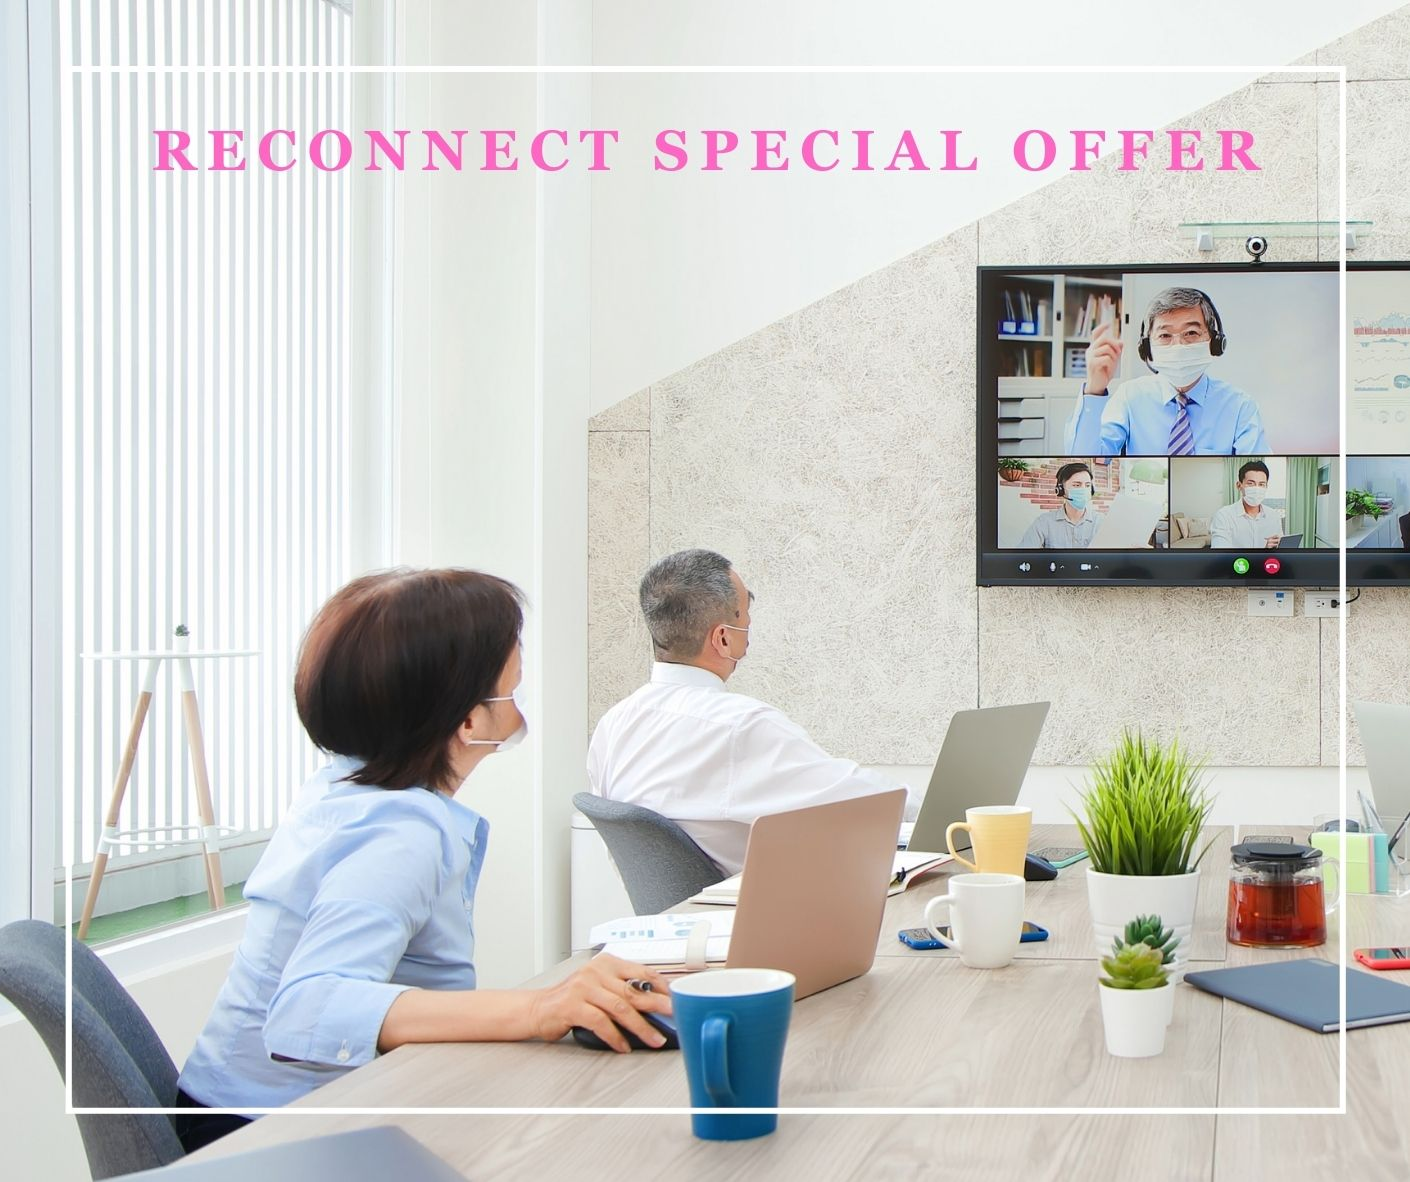 Reconnect Special Offer